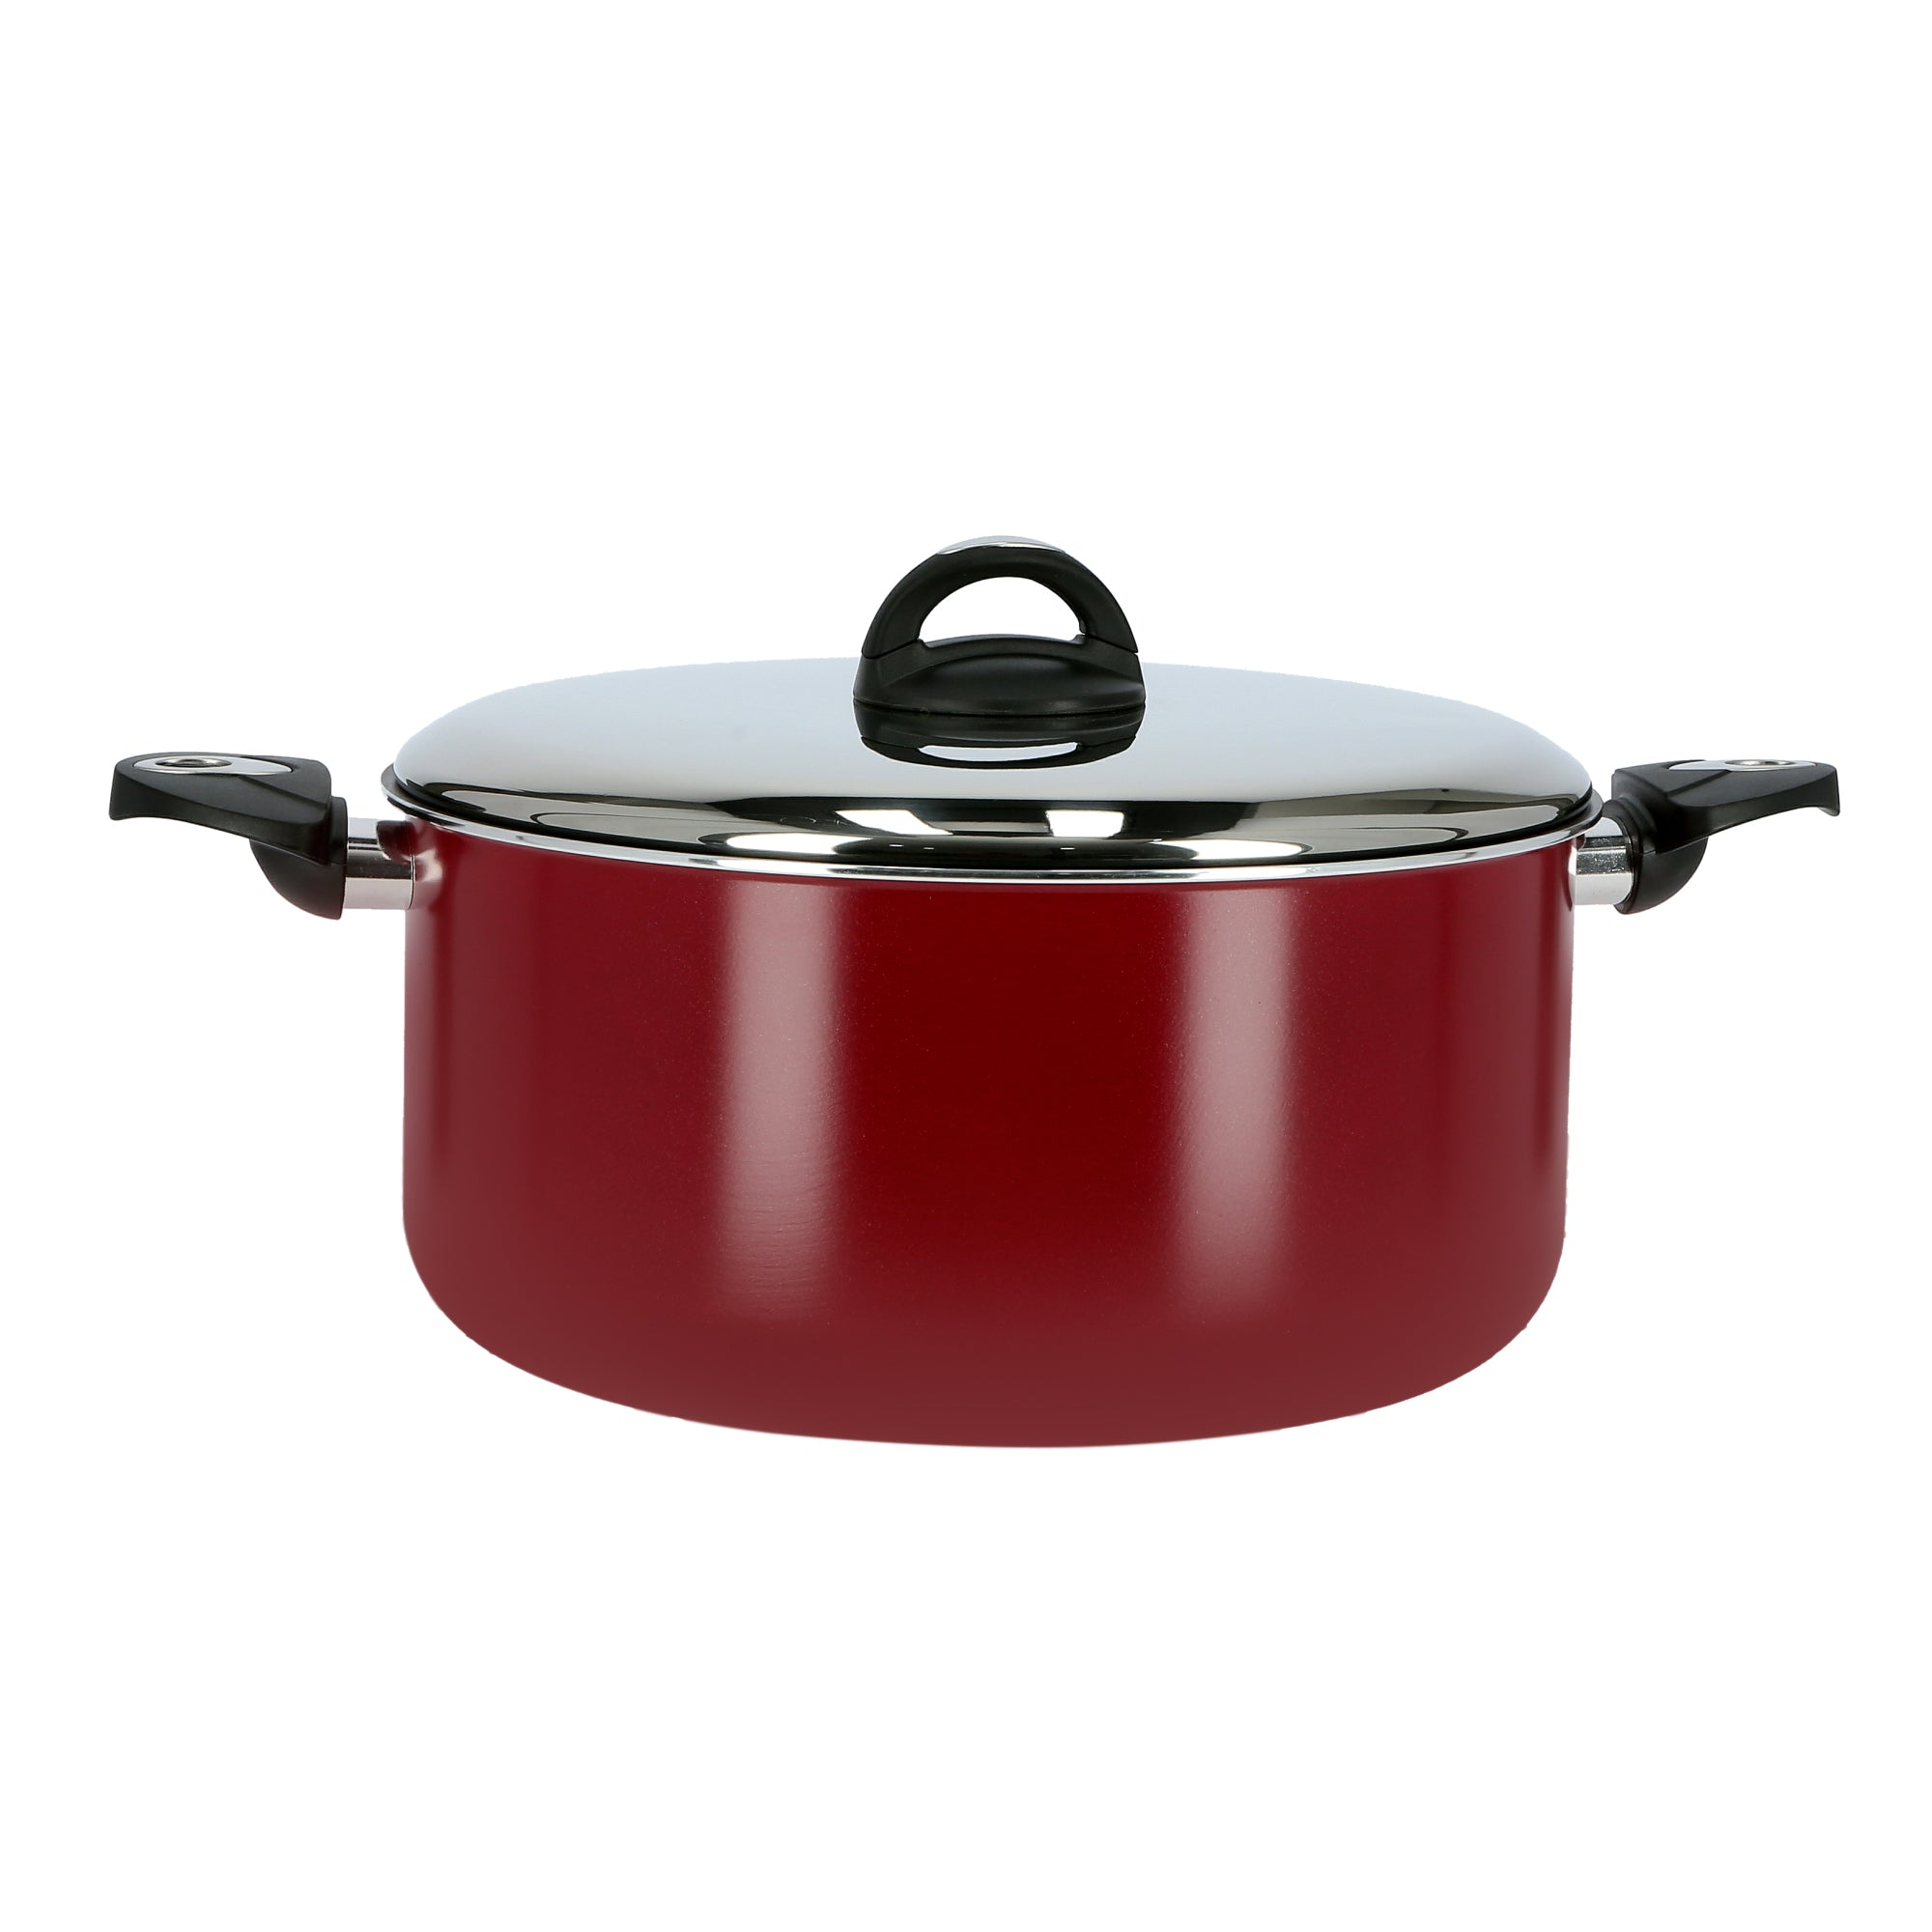 Royalford RF1255C30 Non-Stick Cooking Pot, 30 CM